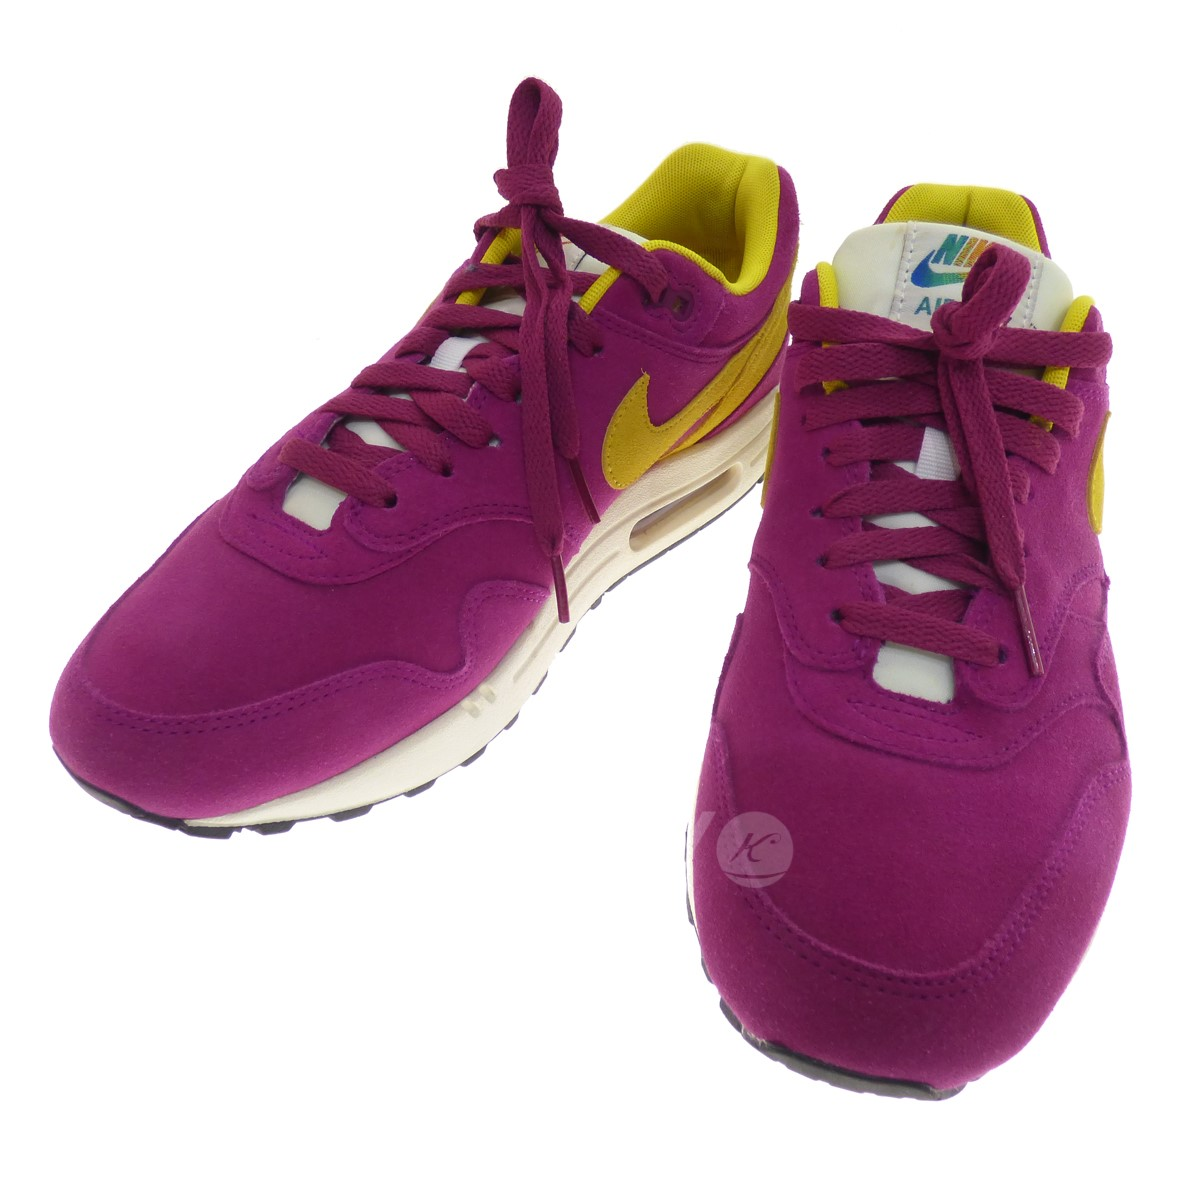 competitive price 7bdfd 6c298 NIKE AIR MAX 90 PREMIUM low-frequency cut sneakers purple size  27 5 ...